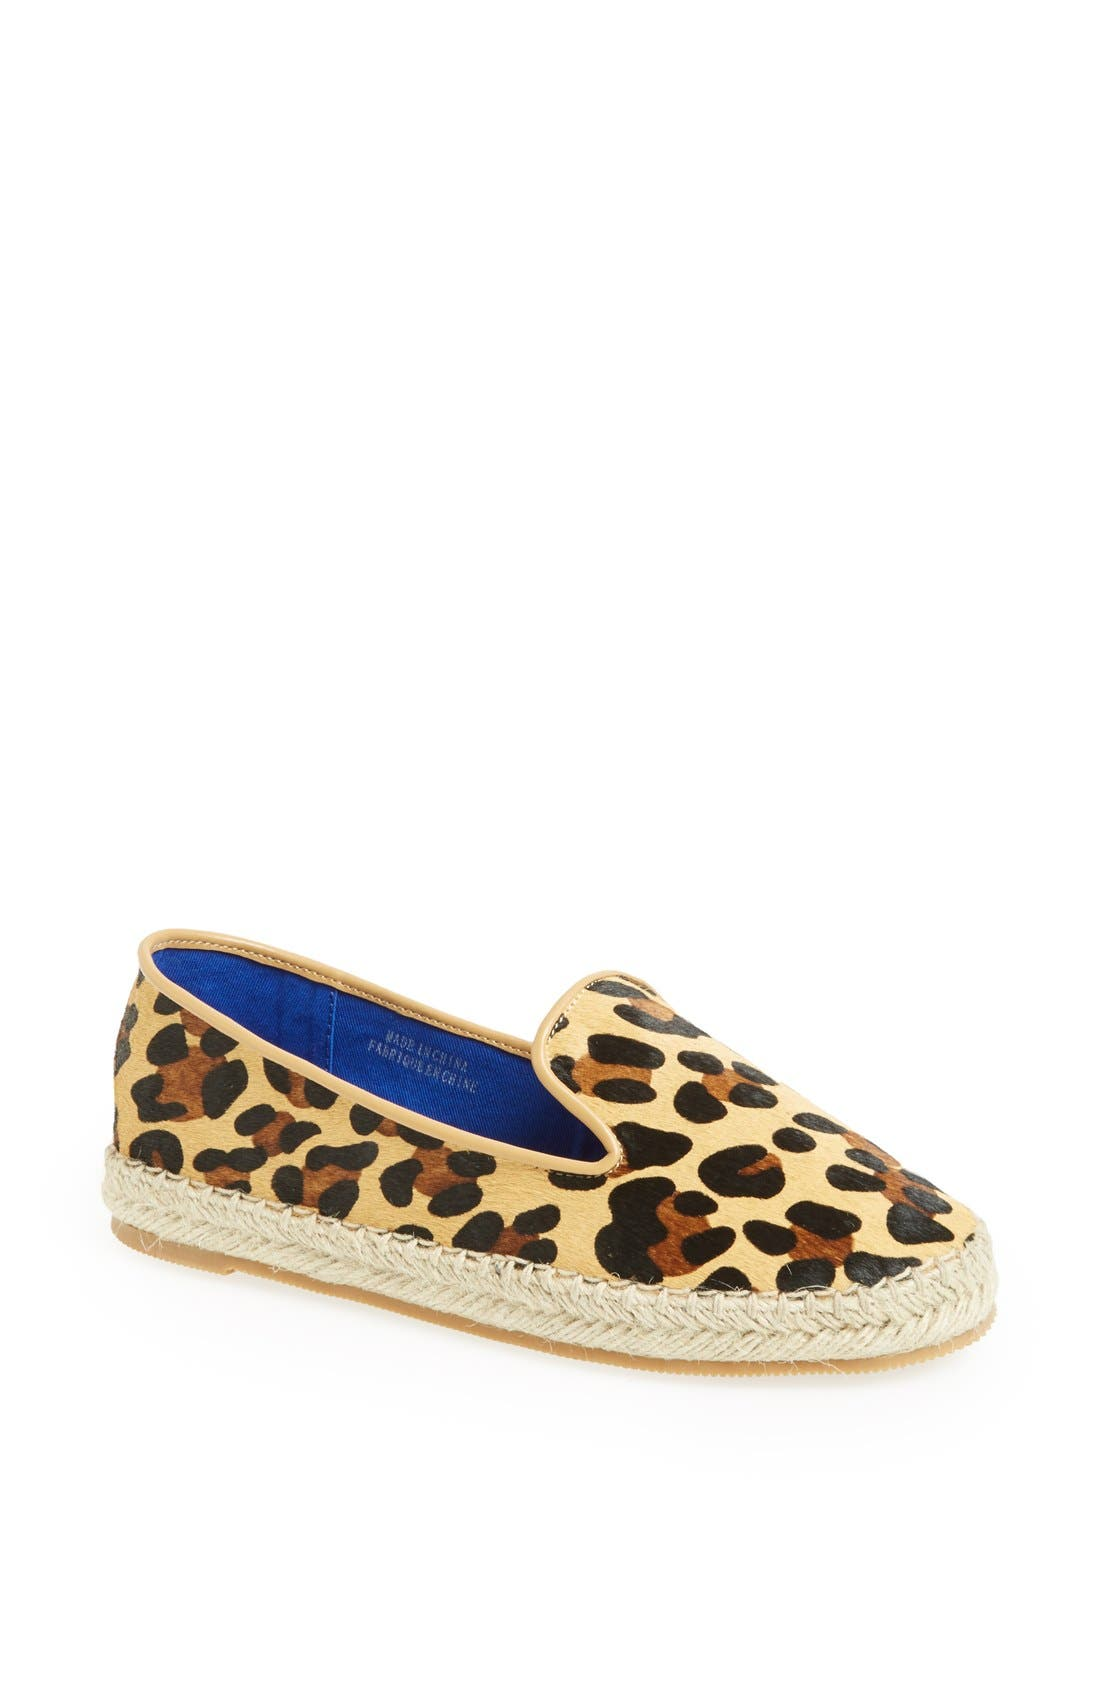 Main Image - Jeffrey Campbell 'Abides' Printed Calf Hair Espadrille Flat